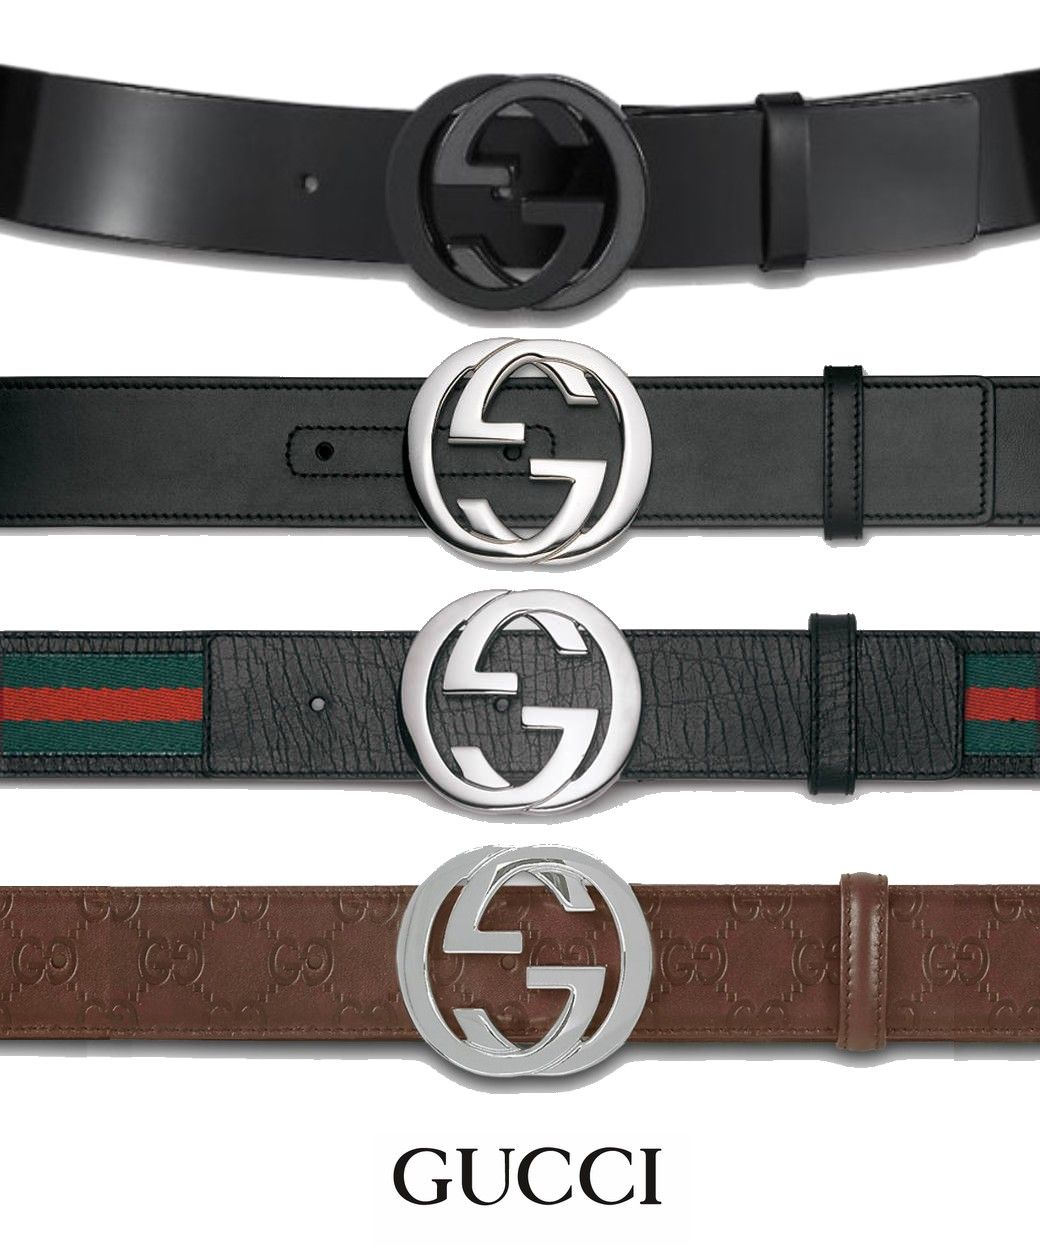 338ac4daeaa gucci belt -love them all!